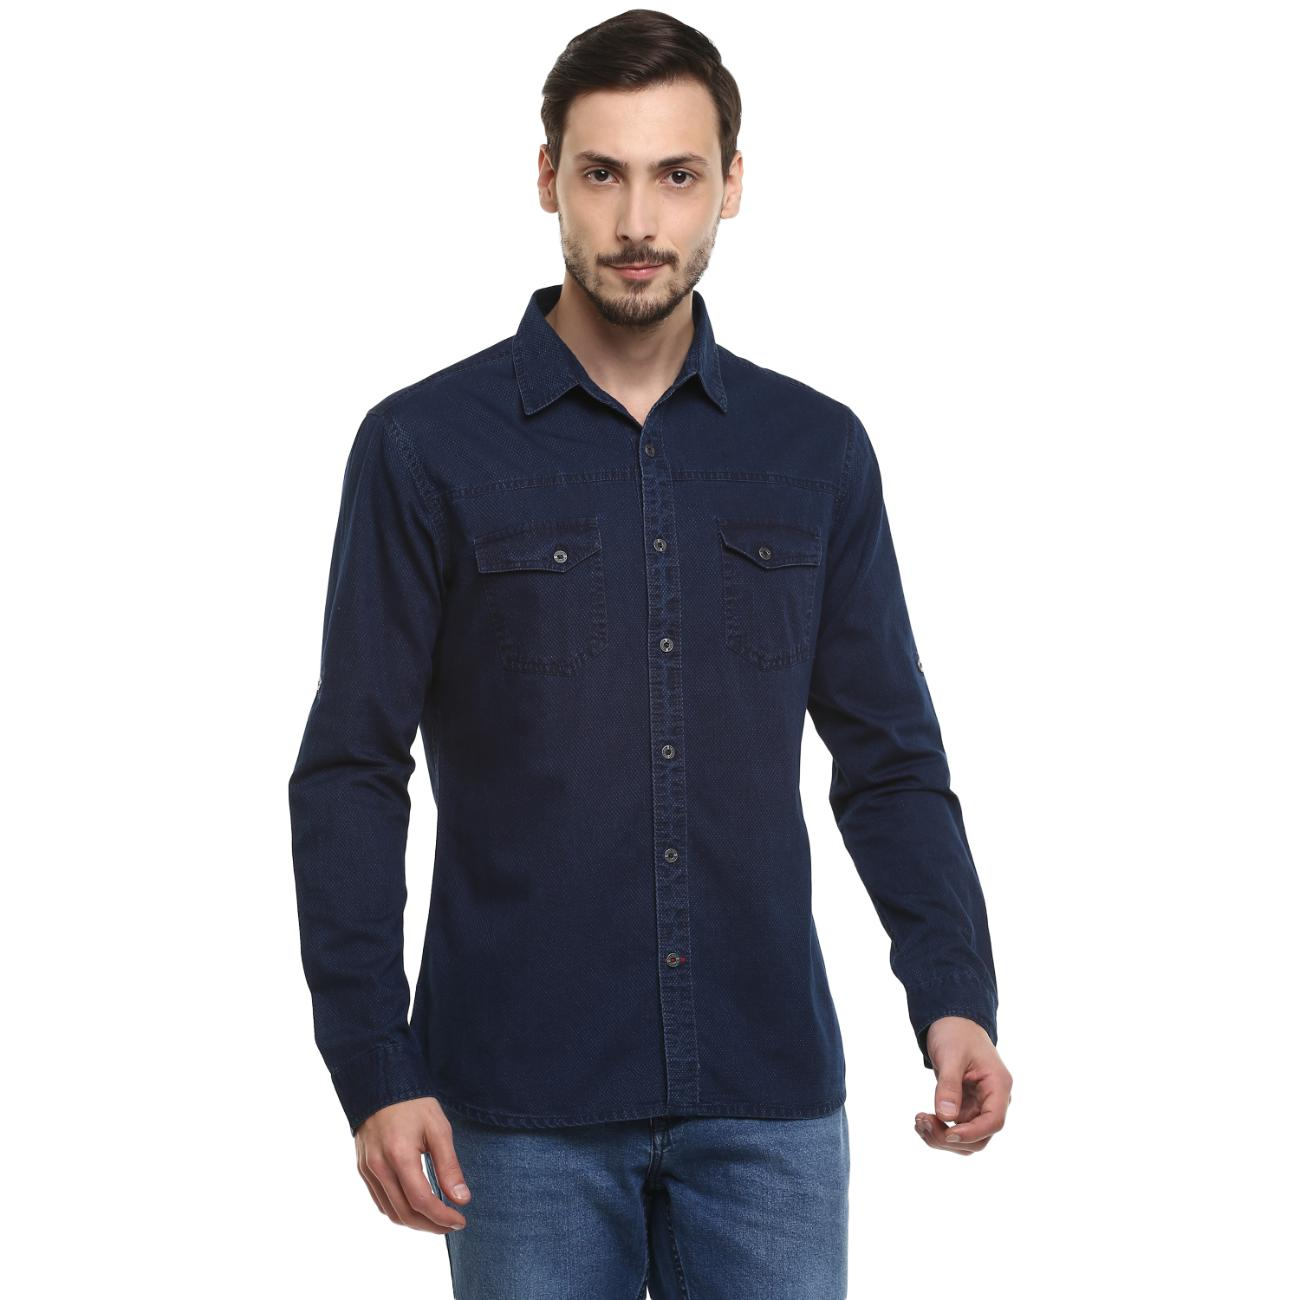 Blue Color Shirts from Red Chief